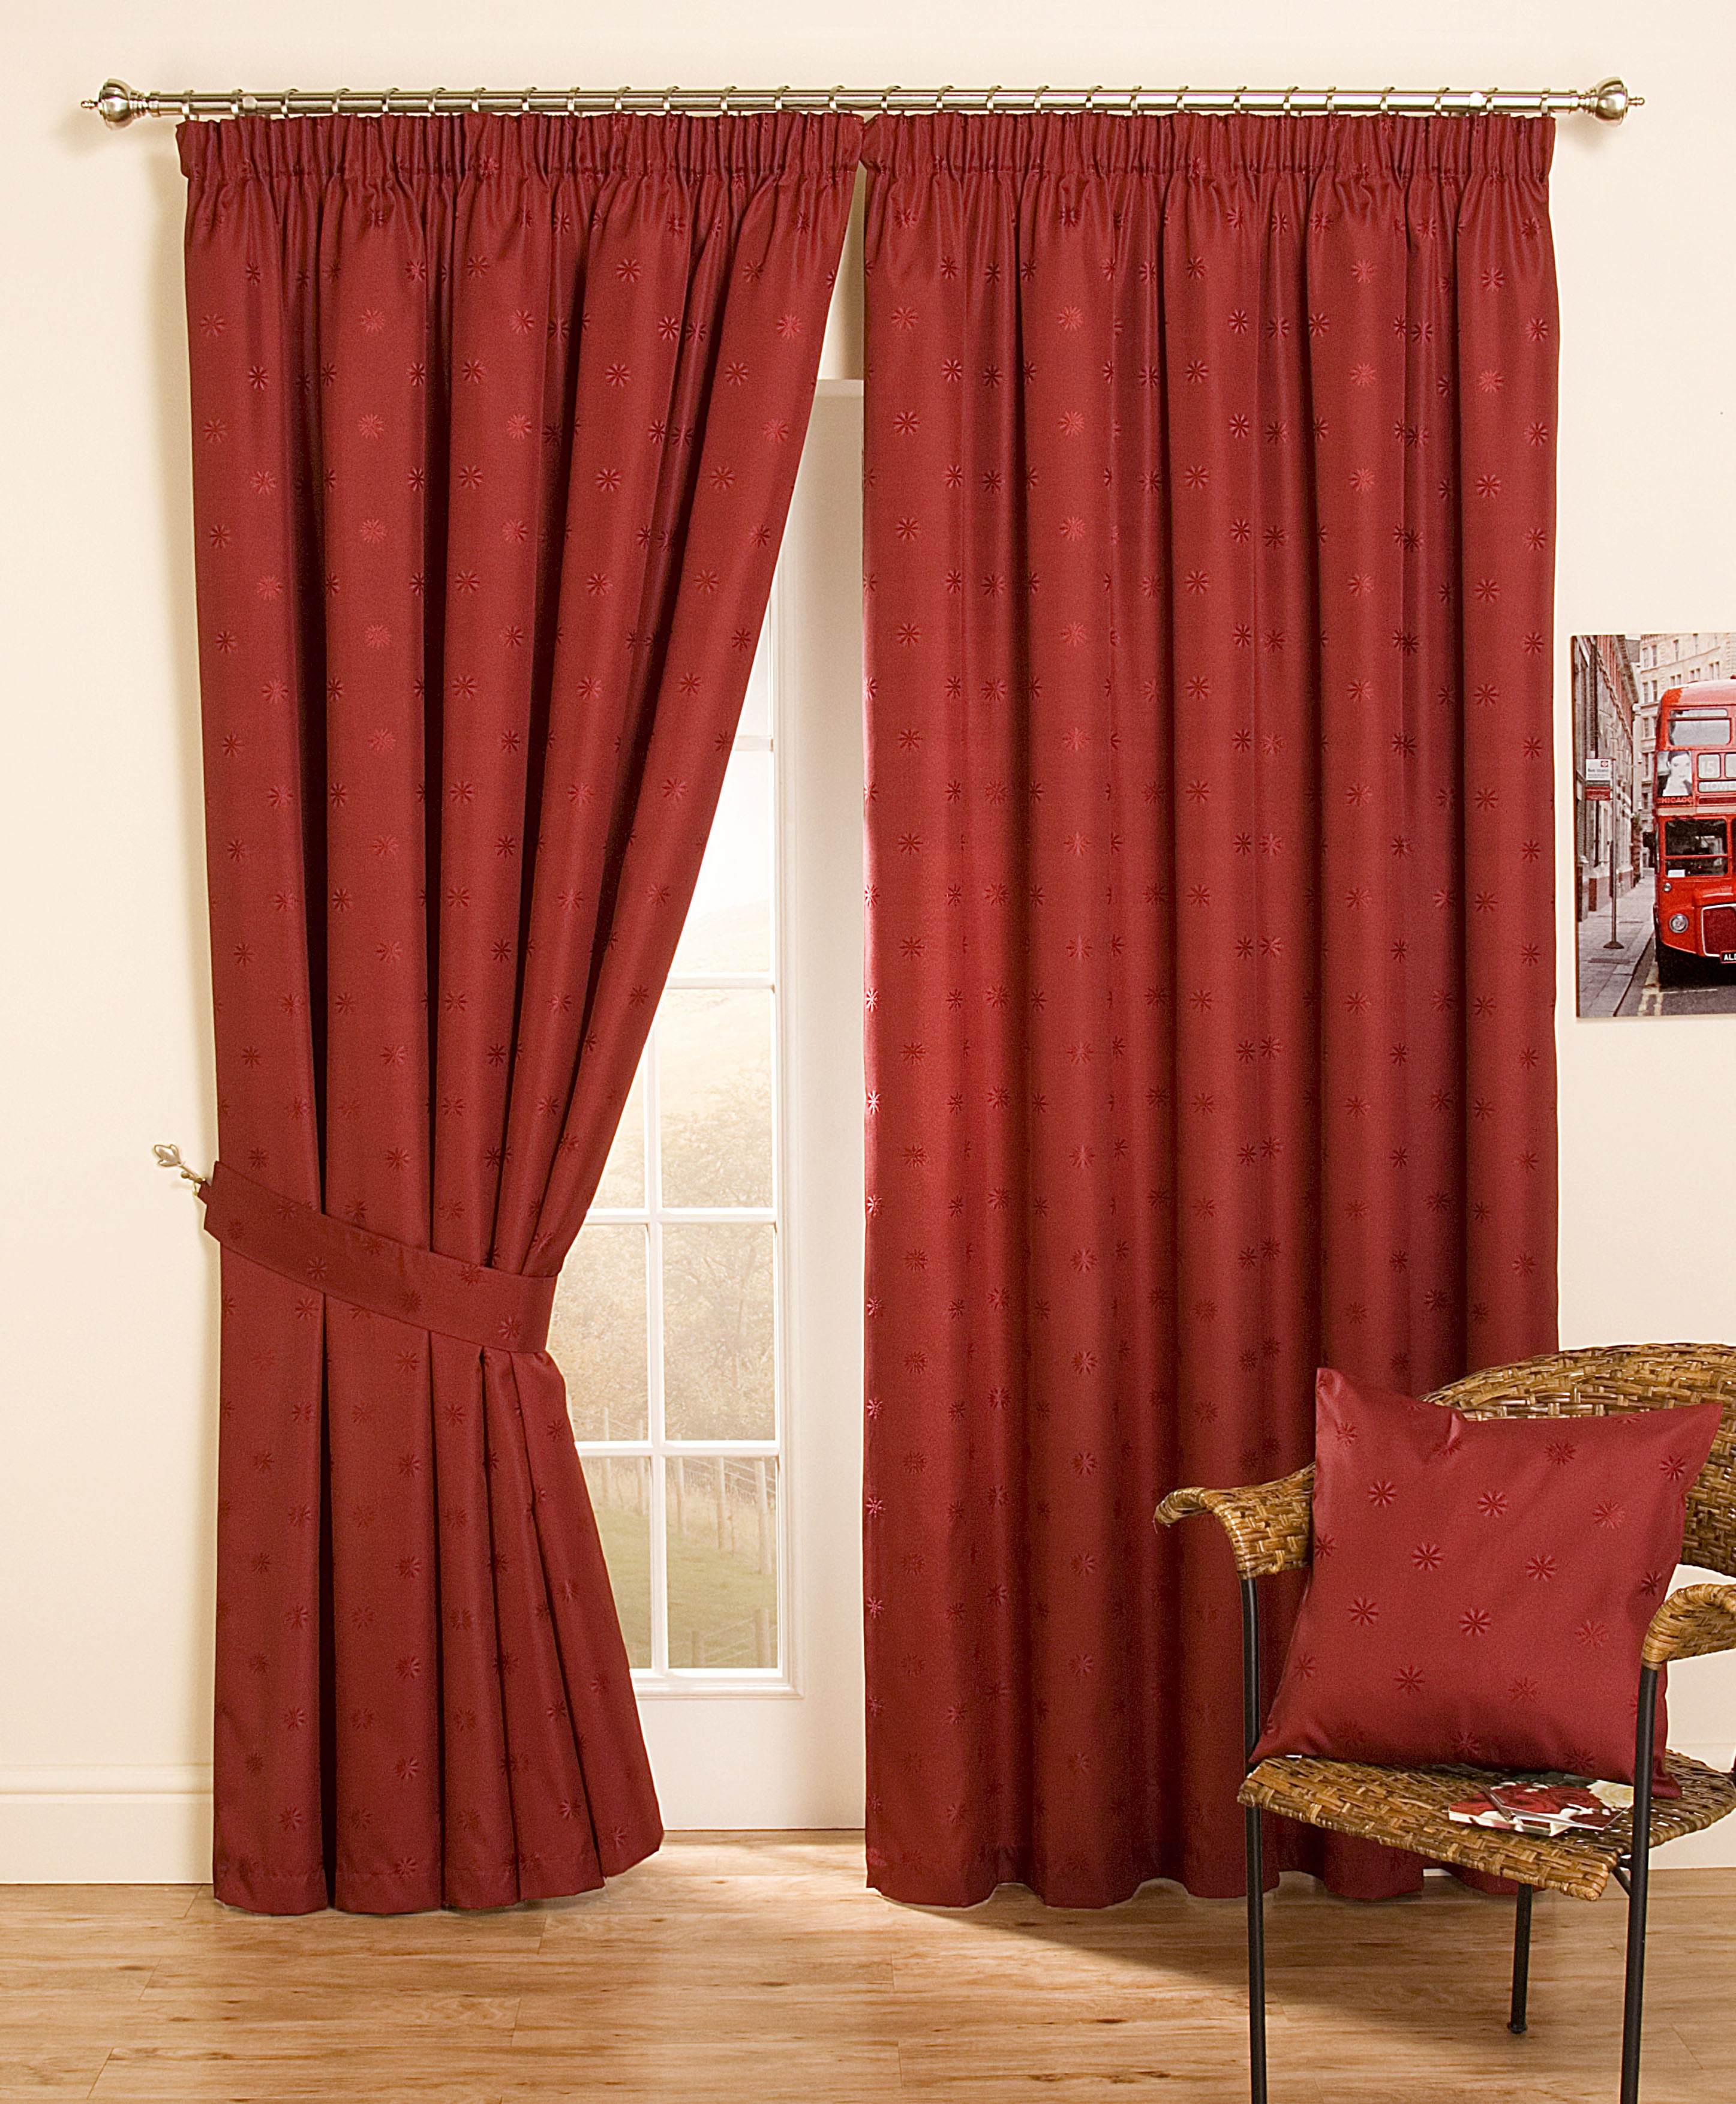 Cheap-Full-Lined-Tape-Top-Pencil-Pleat-Jacquard-Curtains-amp-Thermal ...